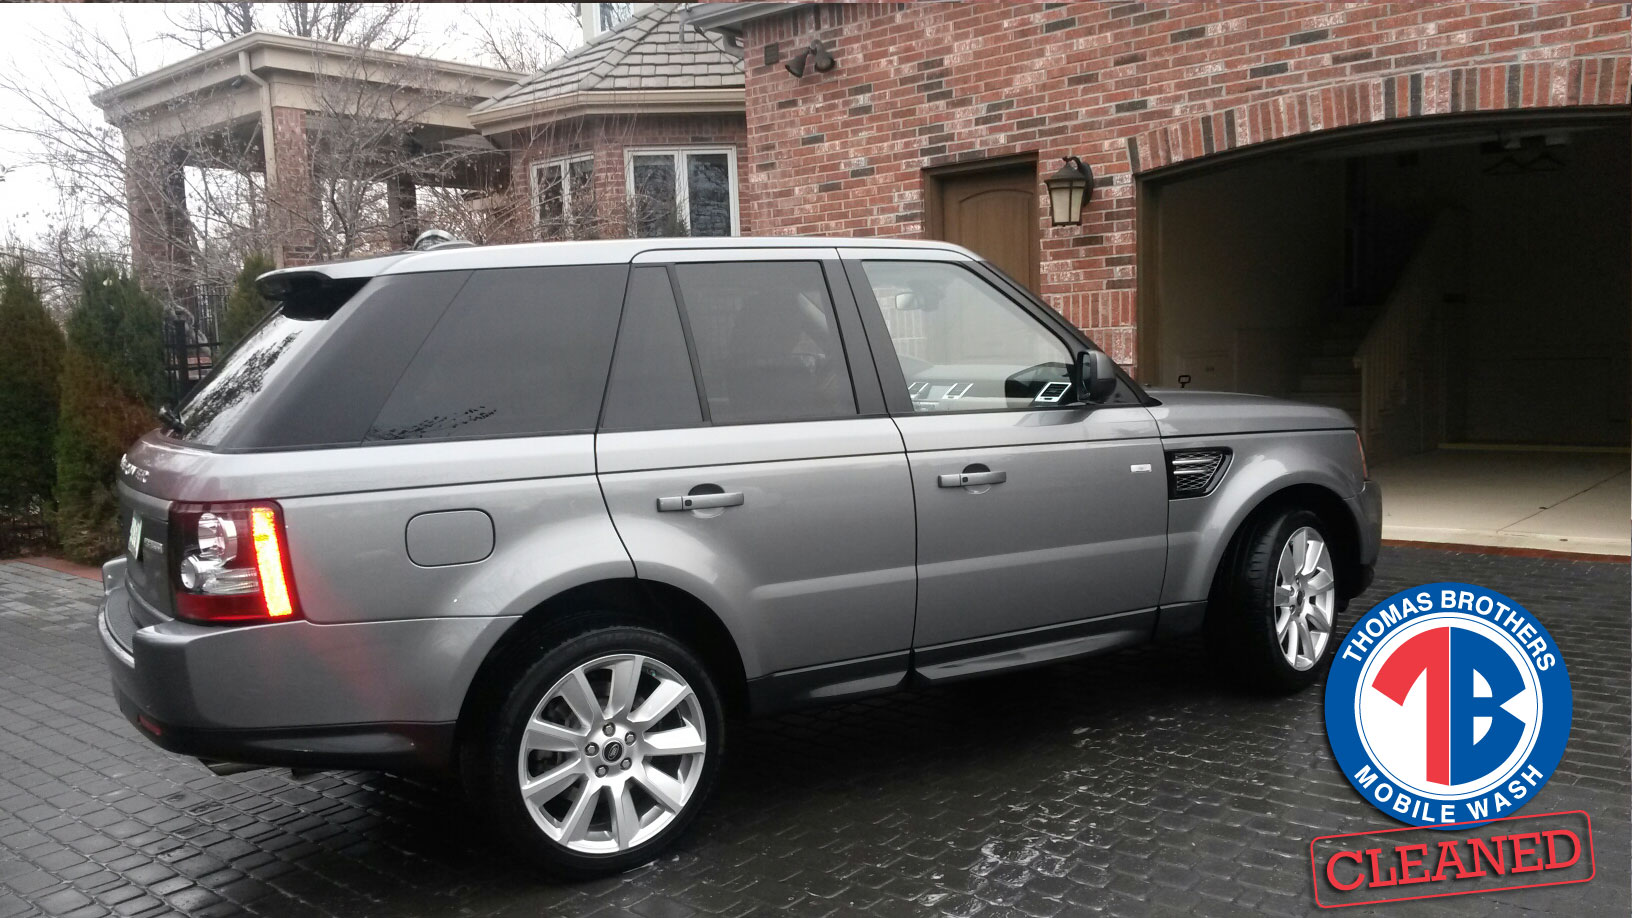 Range Rover power washed clean